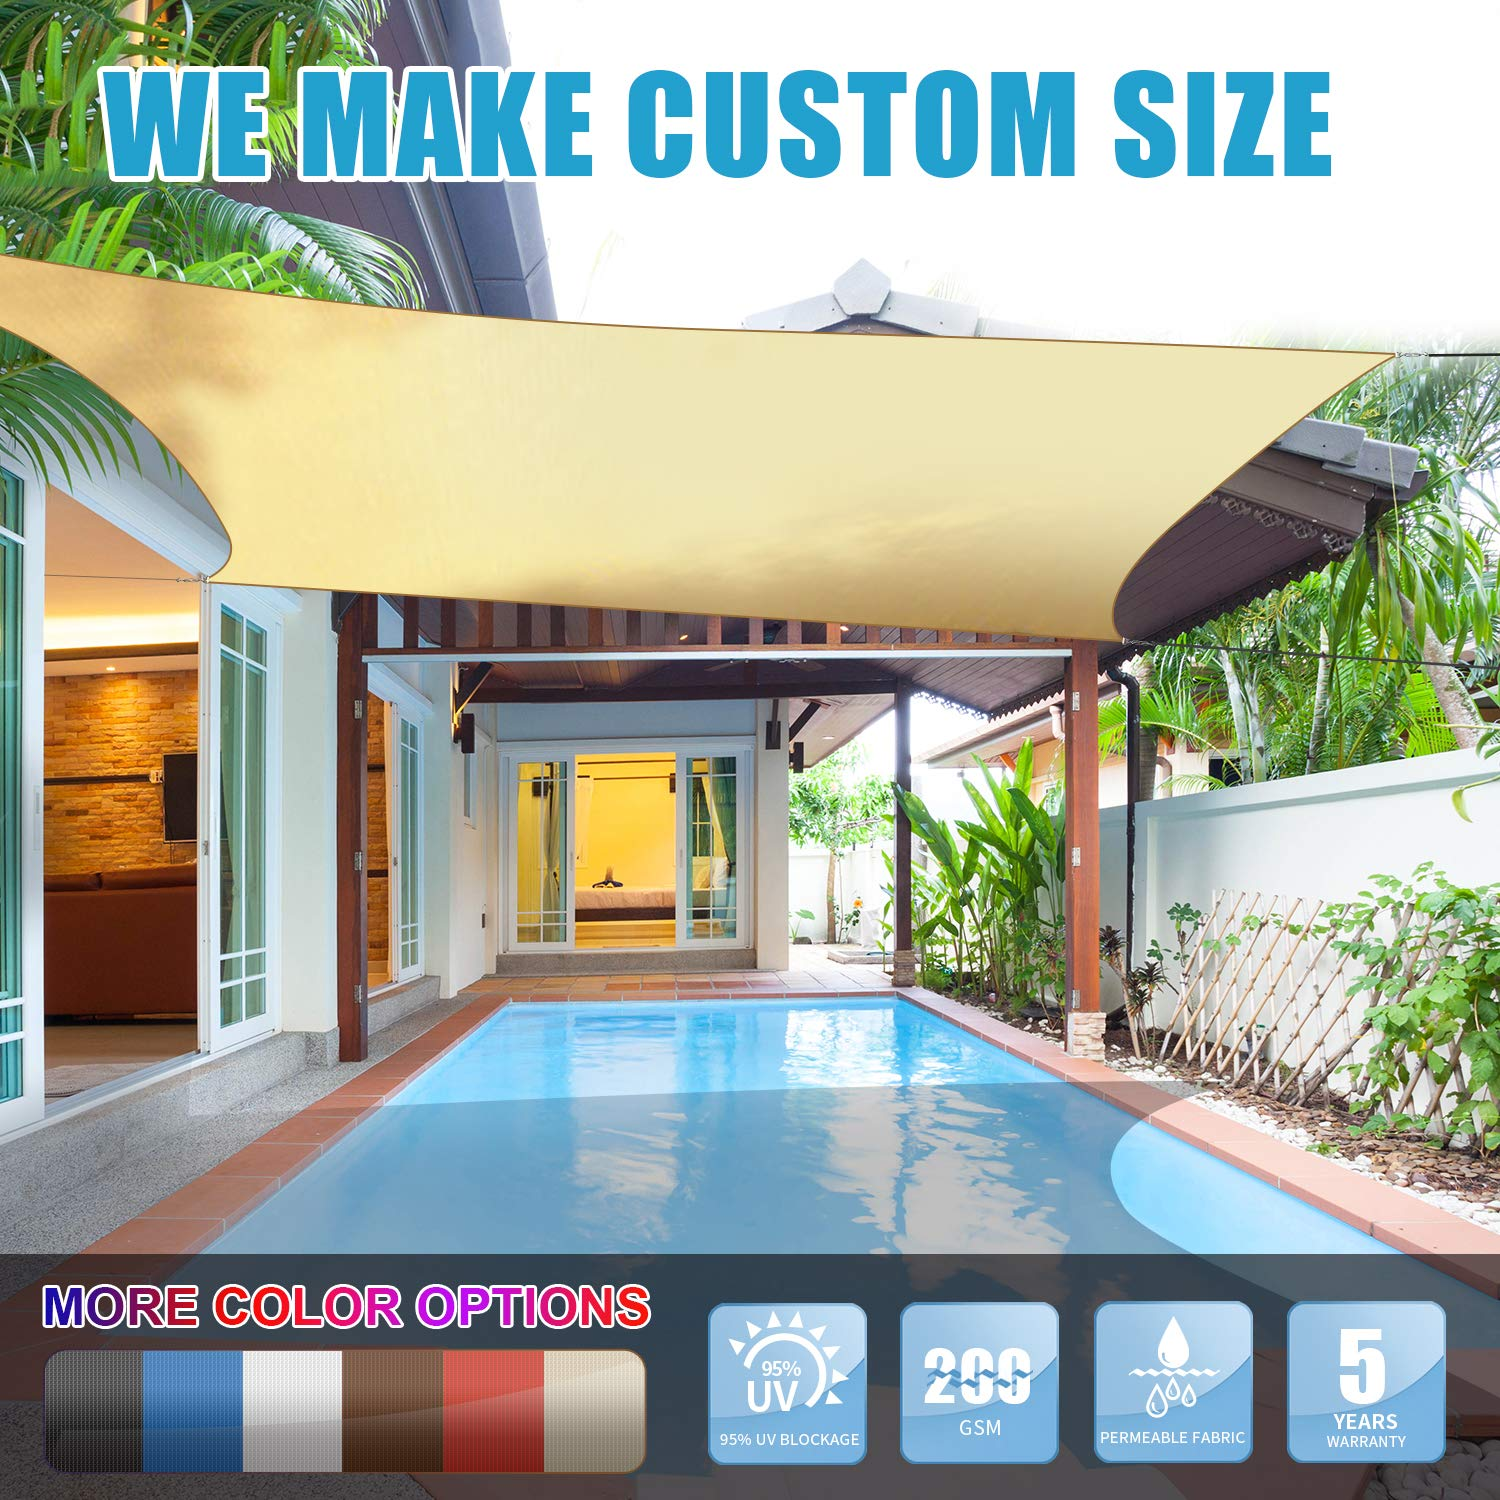 Amgo 16' x 16' Beige Square Sun Shade Sail Canopy Awning, 95% UV Blockage, Water & Air Permeable, Commercial and Residential, for Patio Yard Pergola, 5 Years Warranty (Available for Custom Sizes) by Amgo